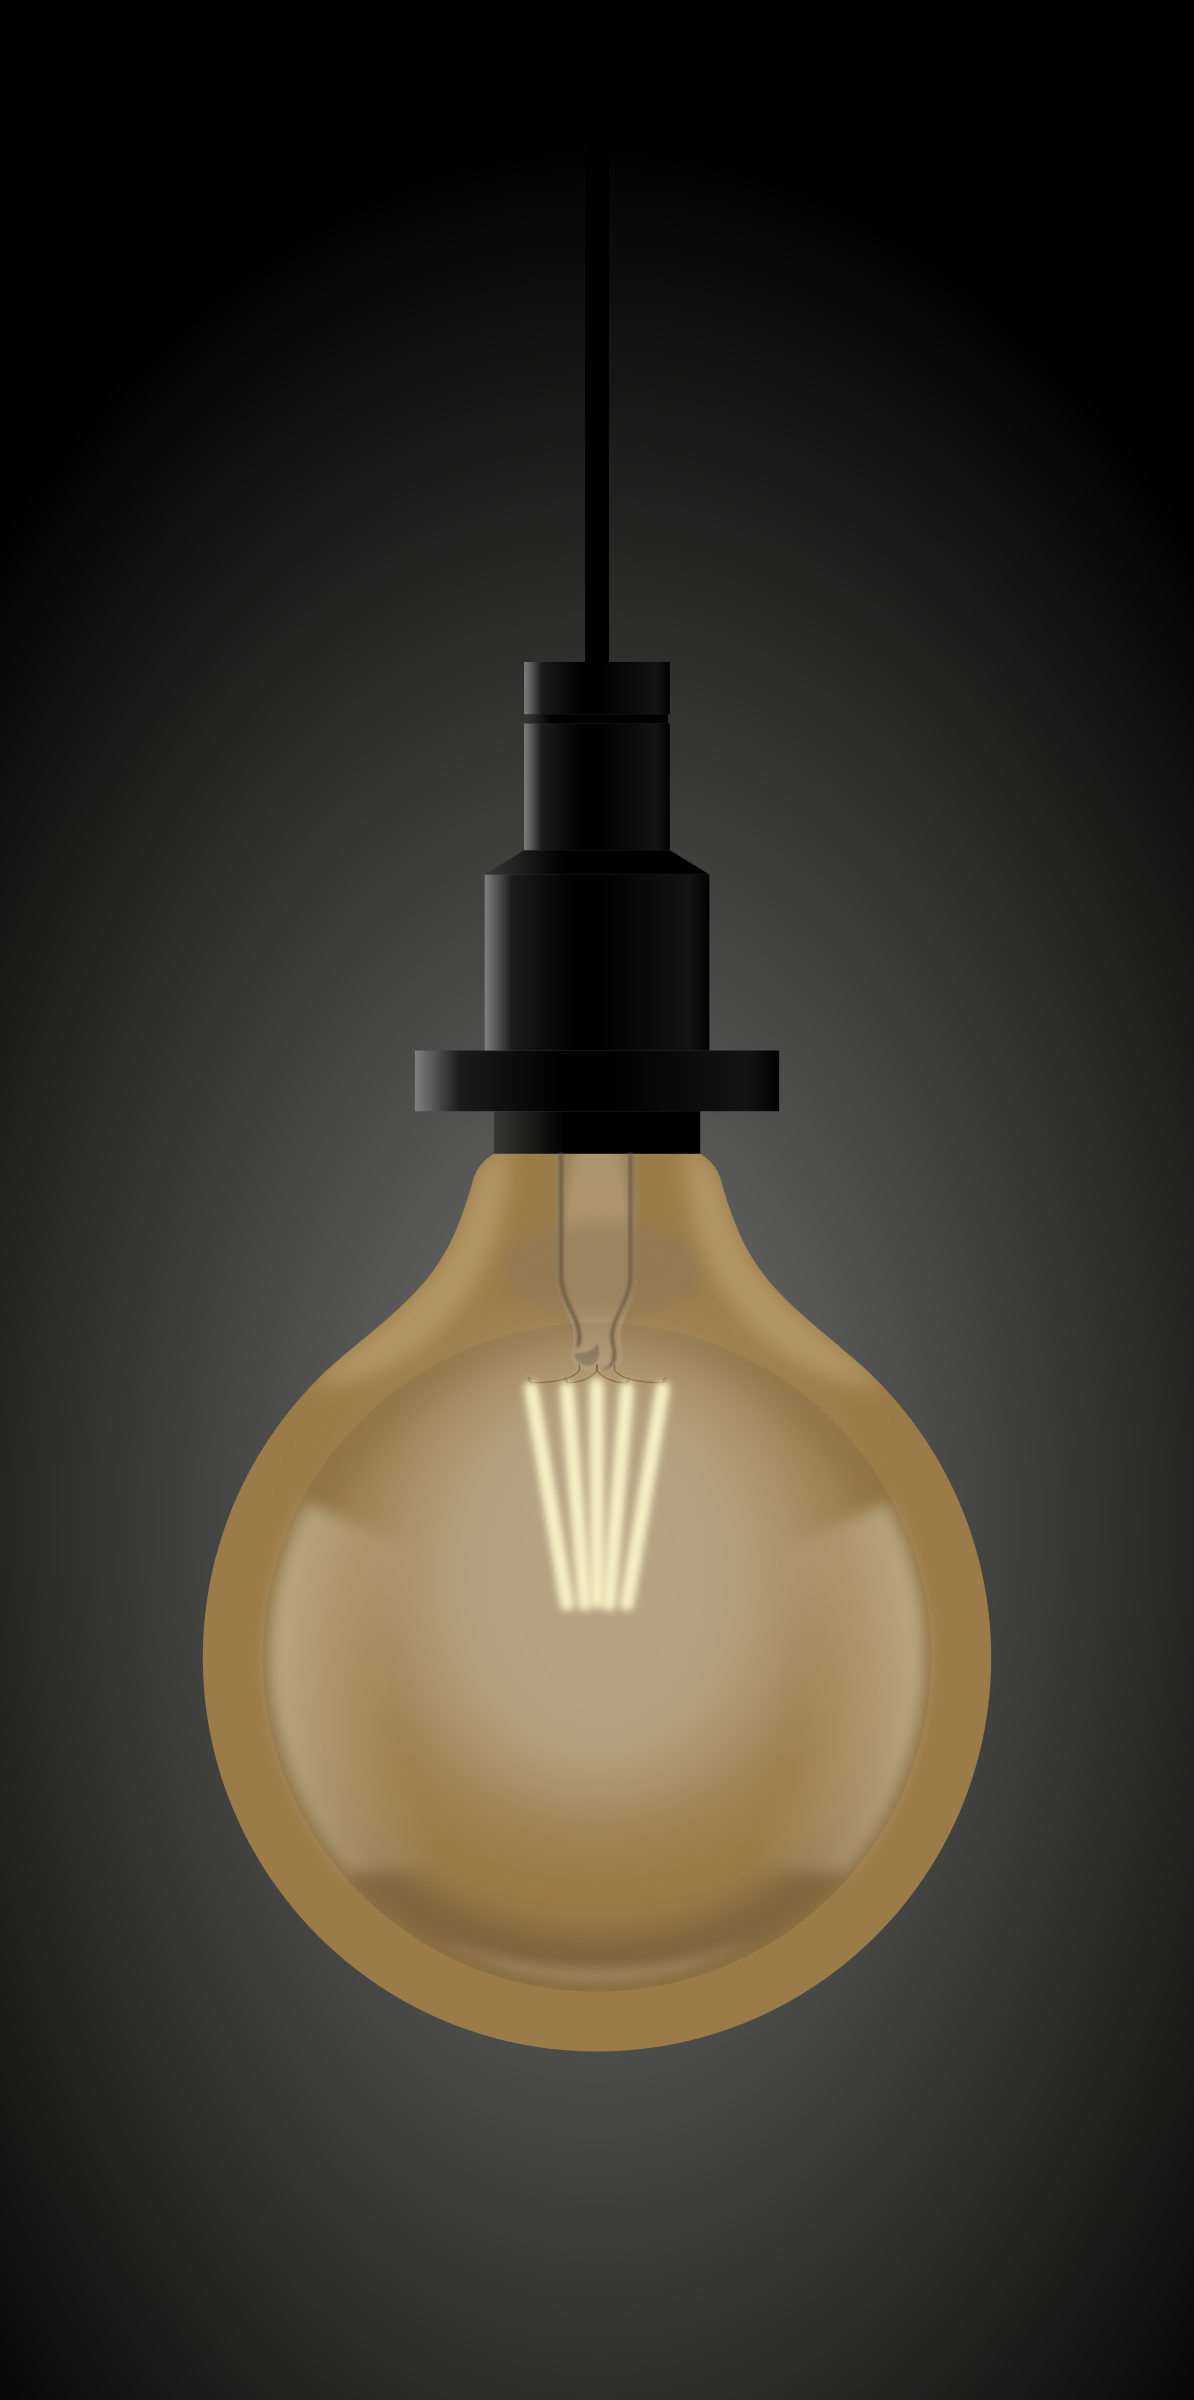 Light bulb by conte magnus